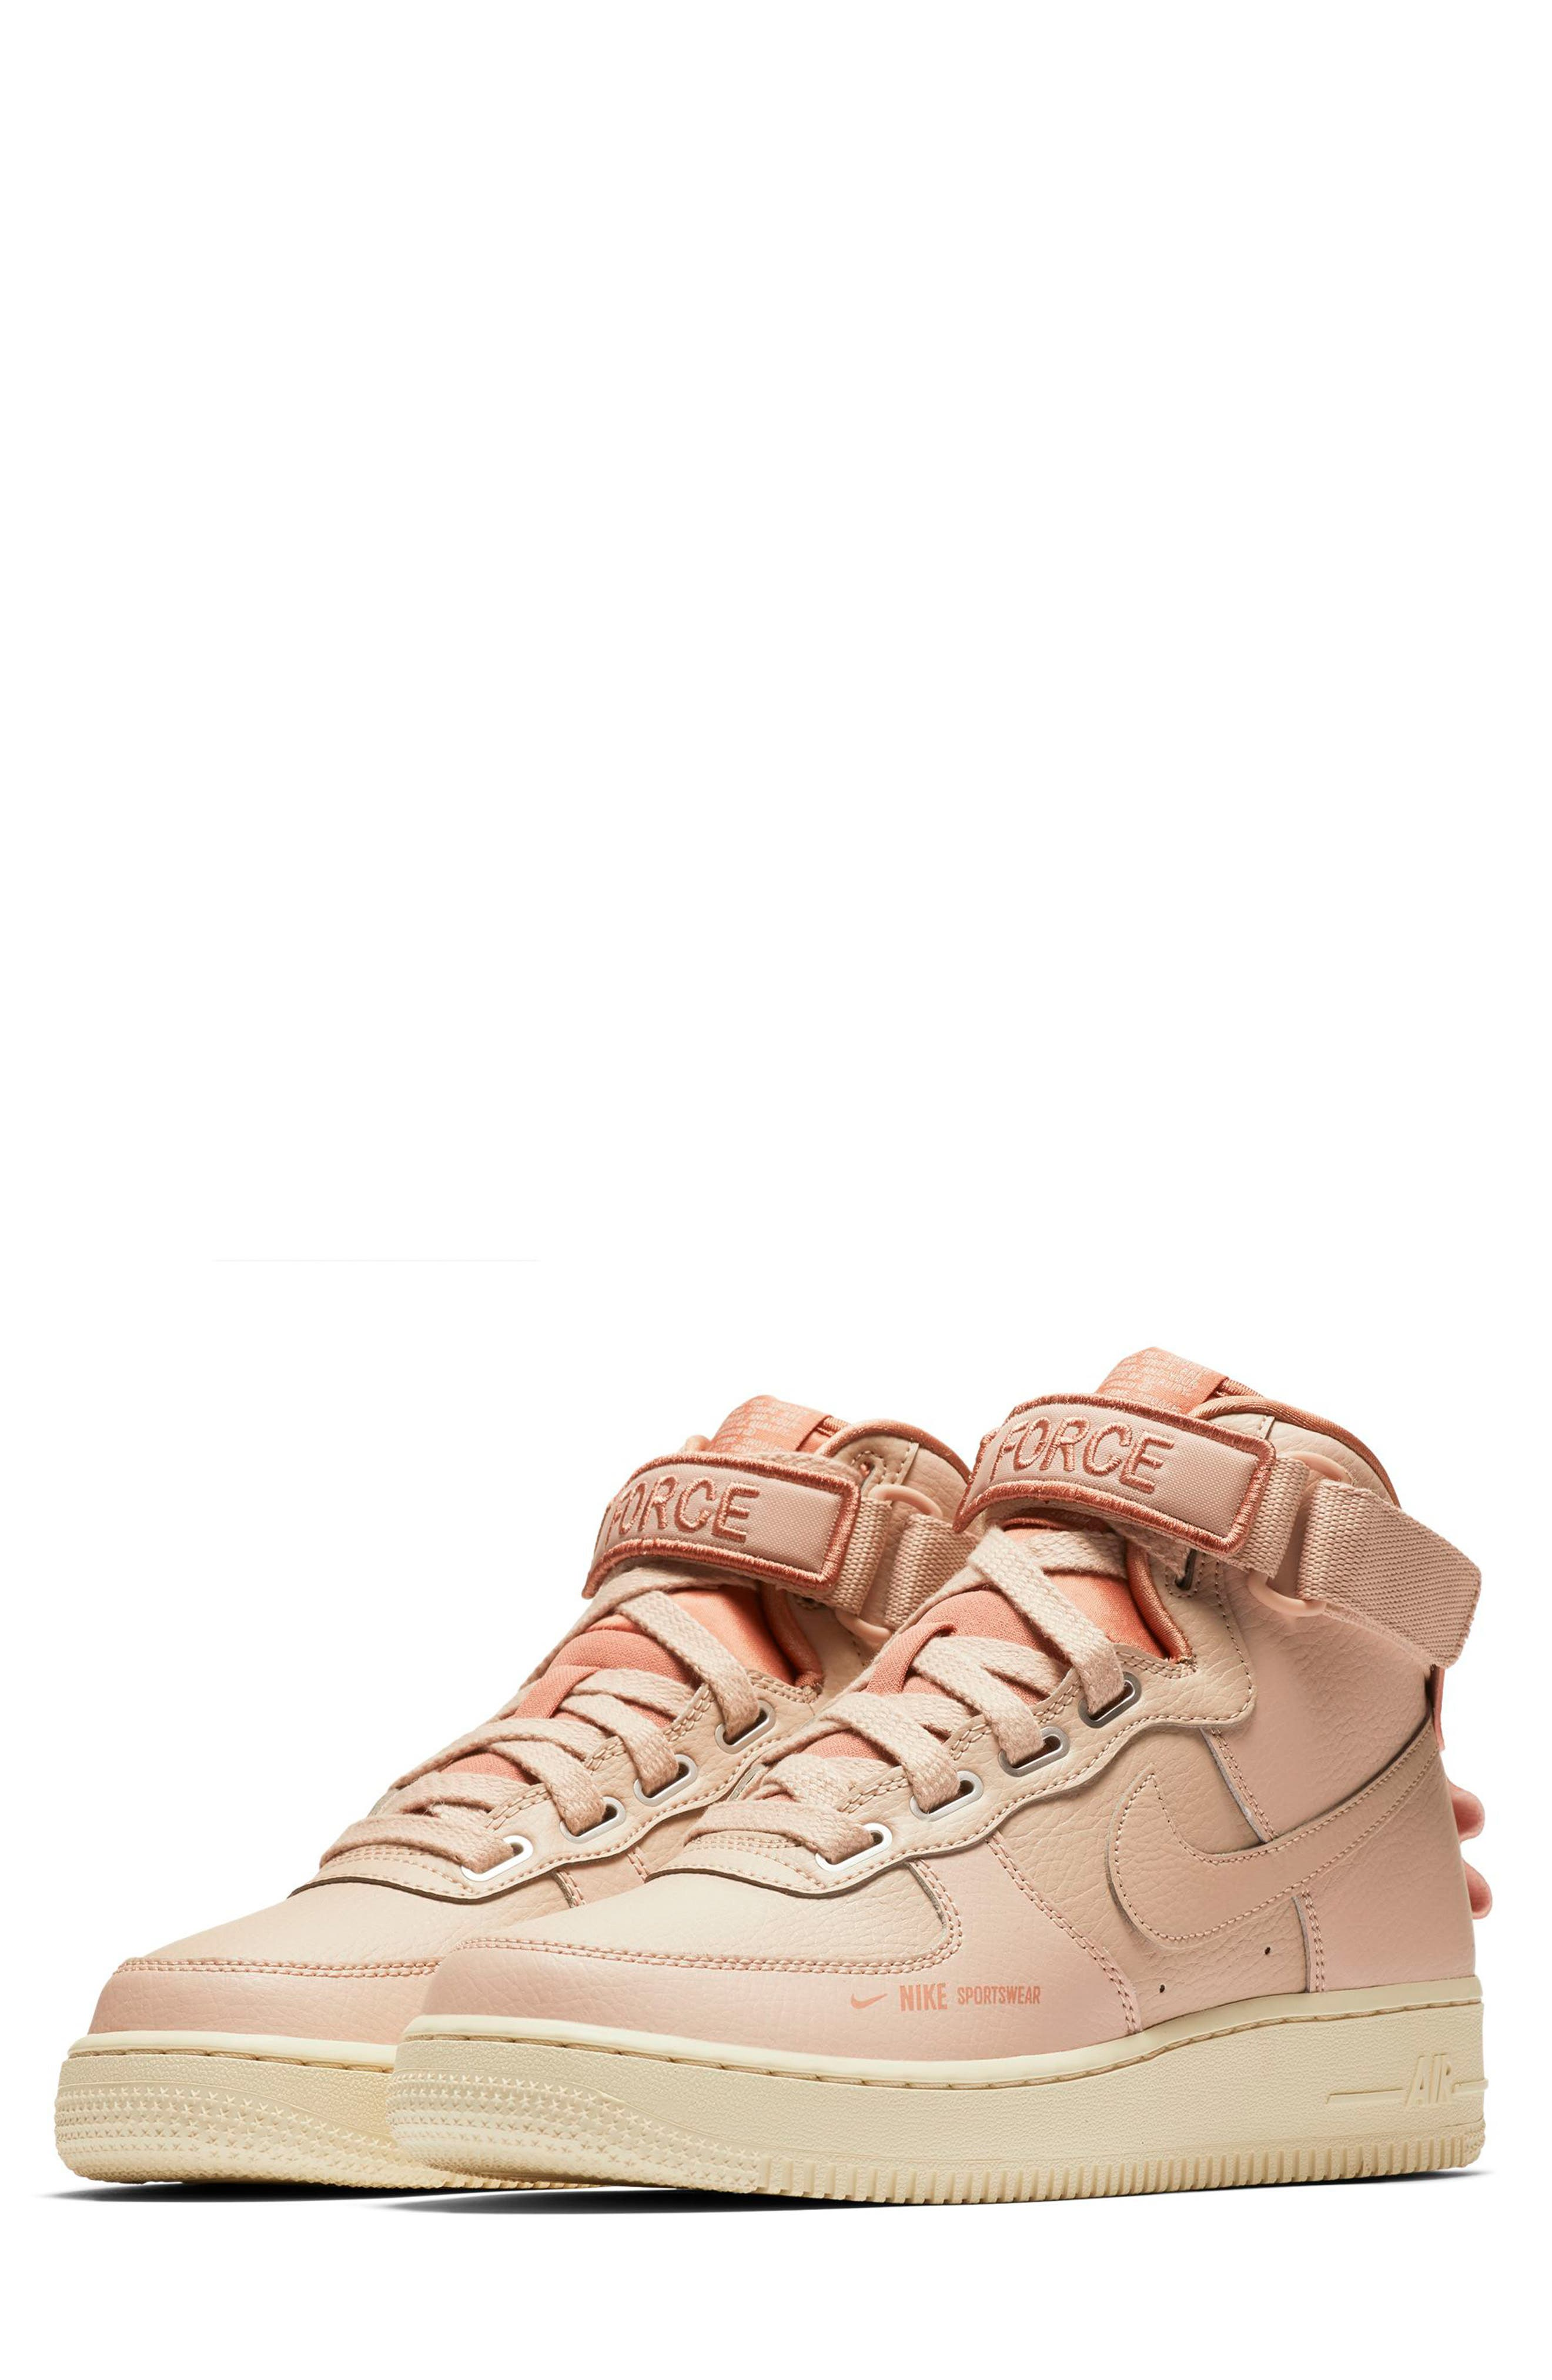 NIKE Air Force 1 High Utility Sneaker, Main, color, 200